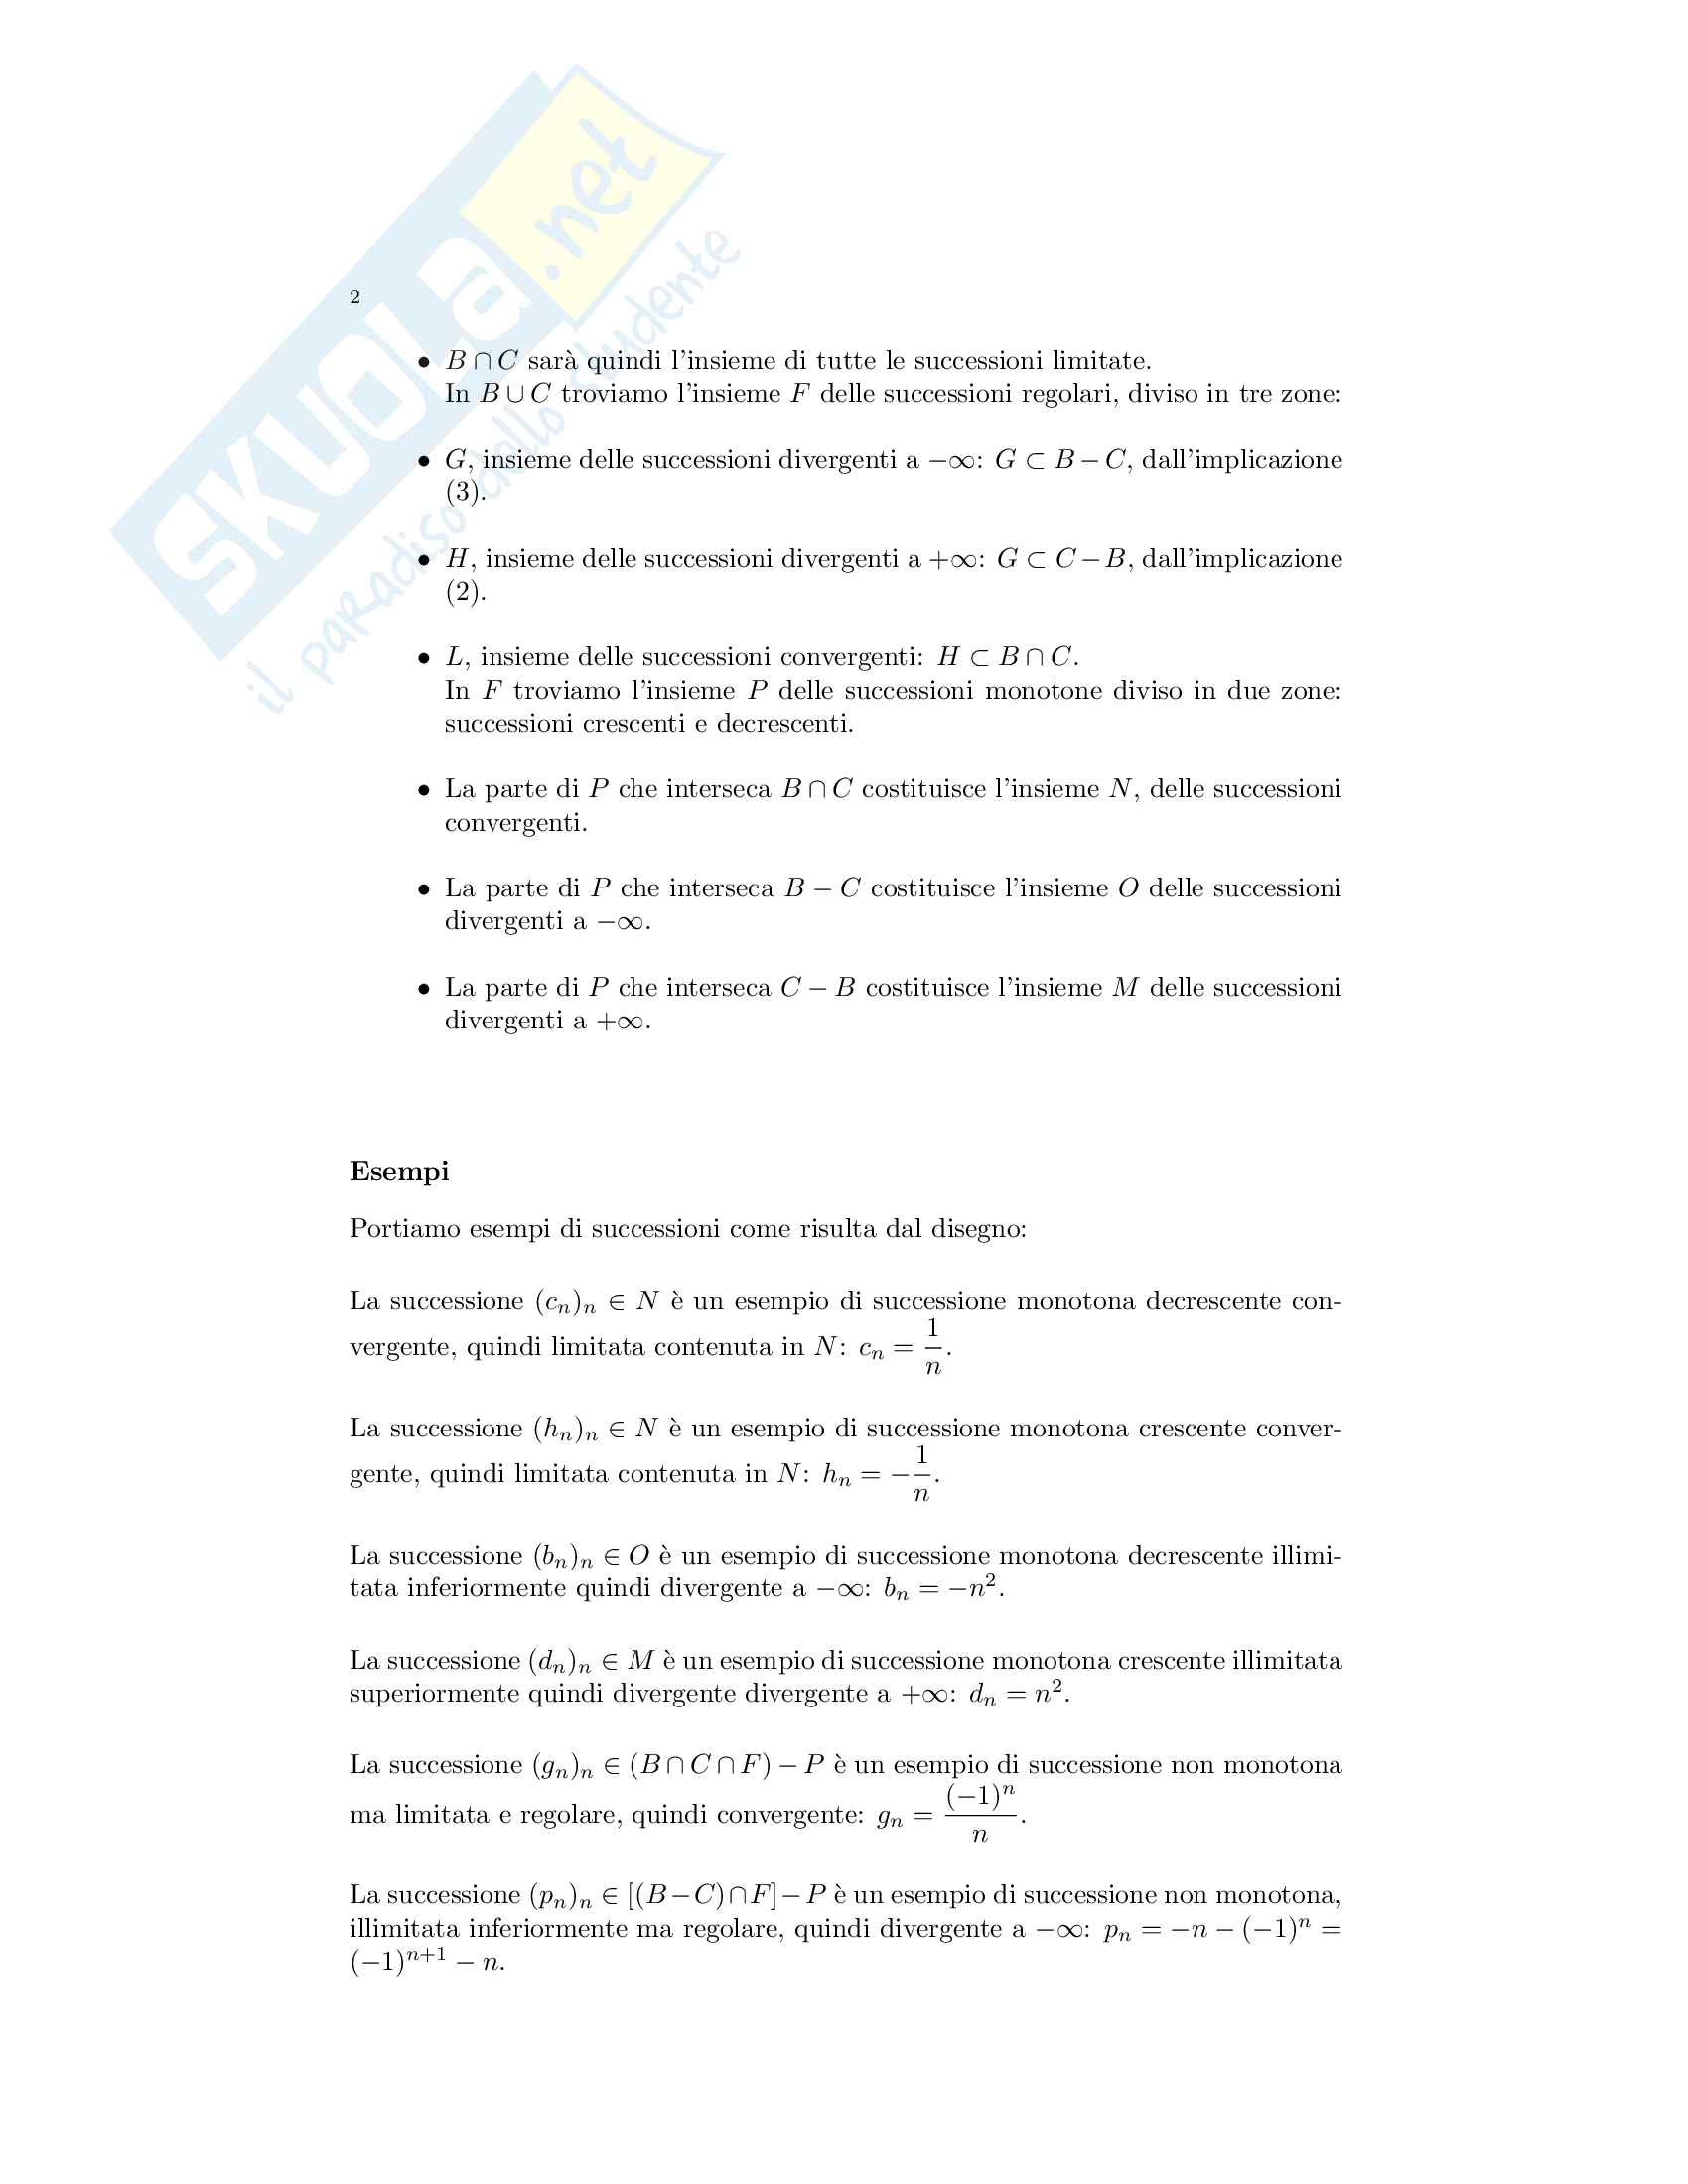 Teoria analisi matematica 1 Pag. 11